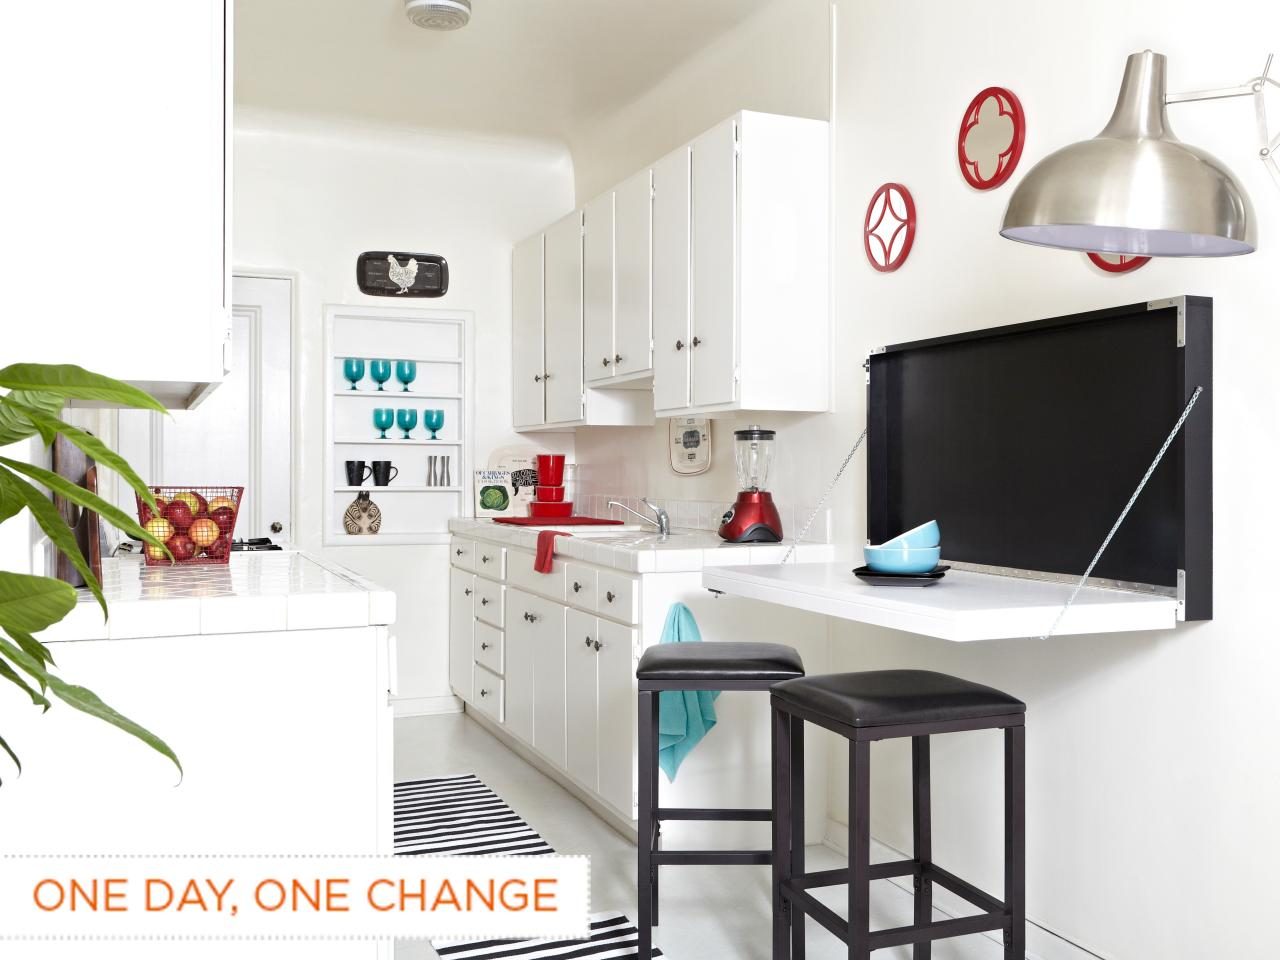 Original Laurie March Odoc Kitchen Fold Down Table With Tag2 S4x3